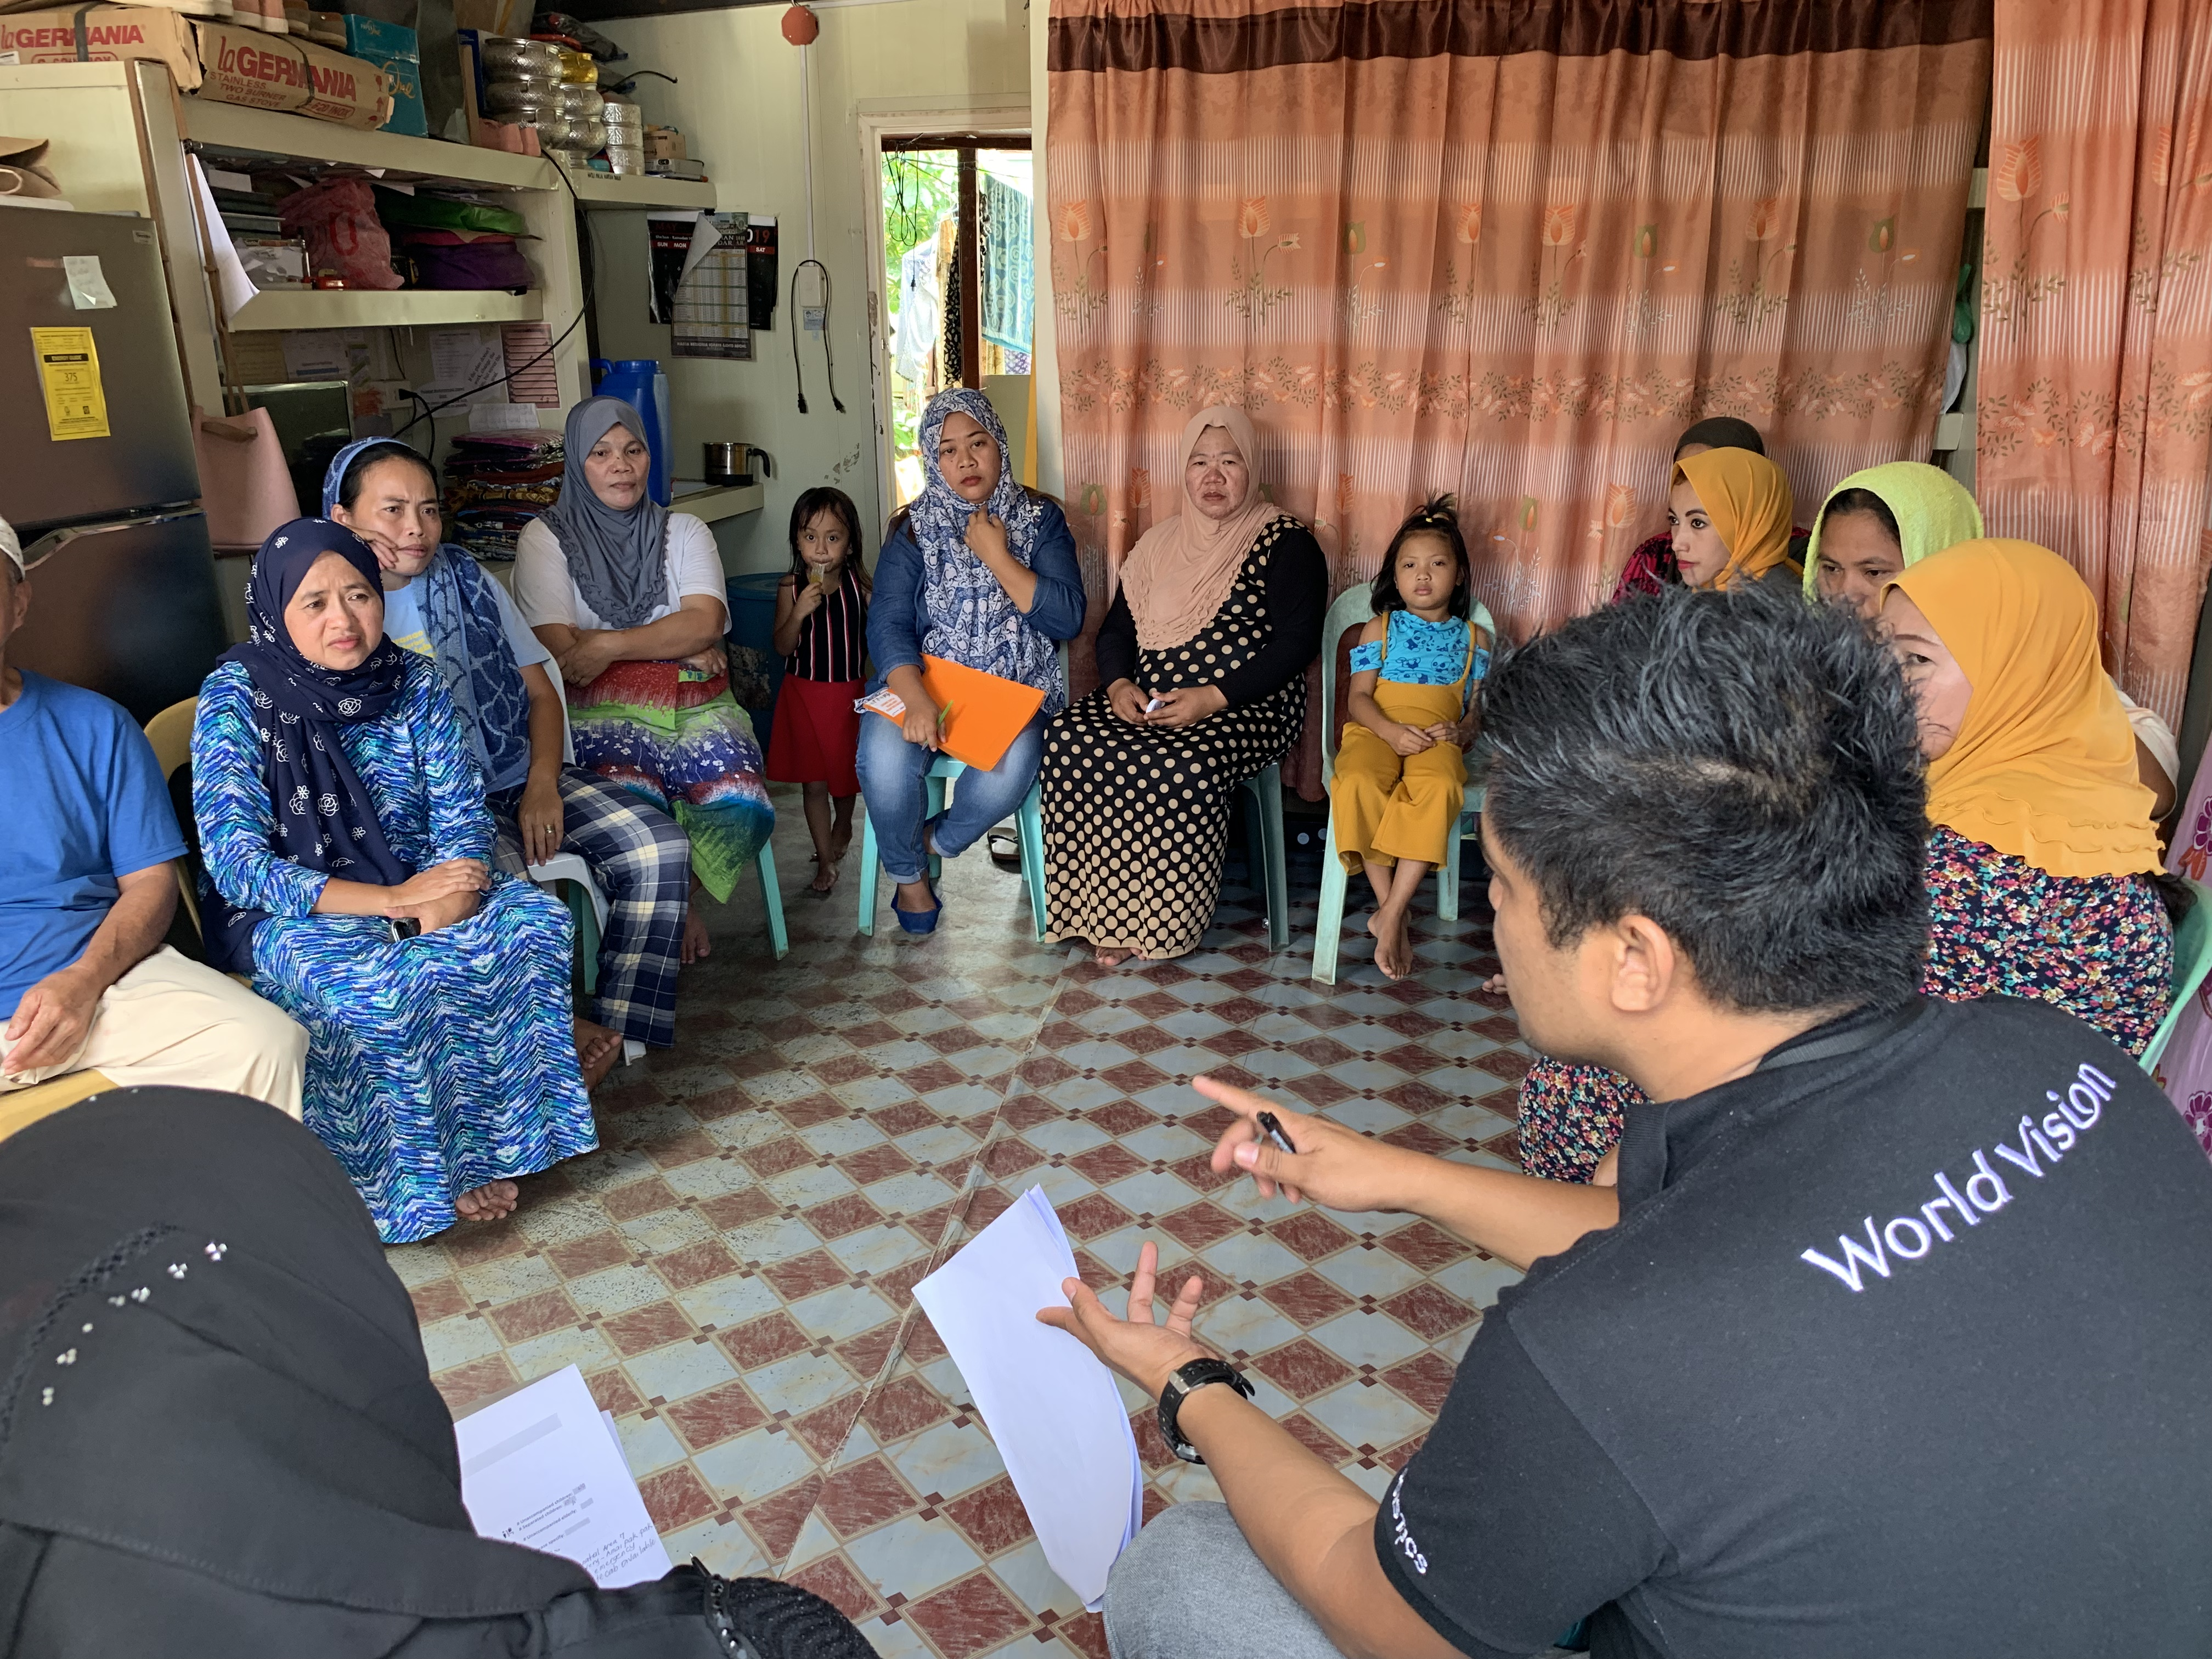 World Vision Development Foundation, through its Marawi Peace and Protection Project, successfully implemented reinforcement of existing Child Protection mechanisms in Marawi City.